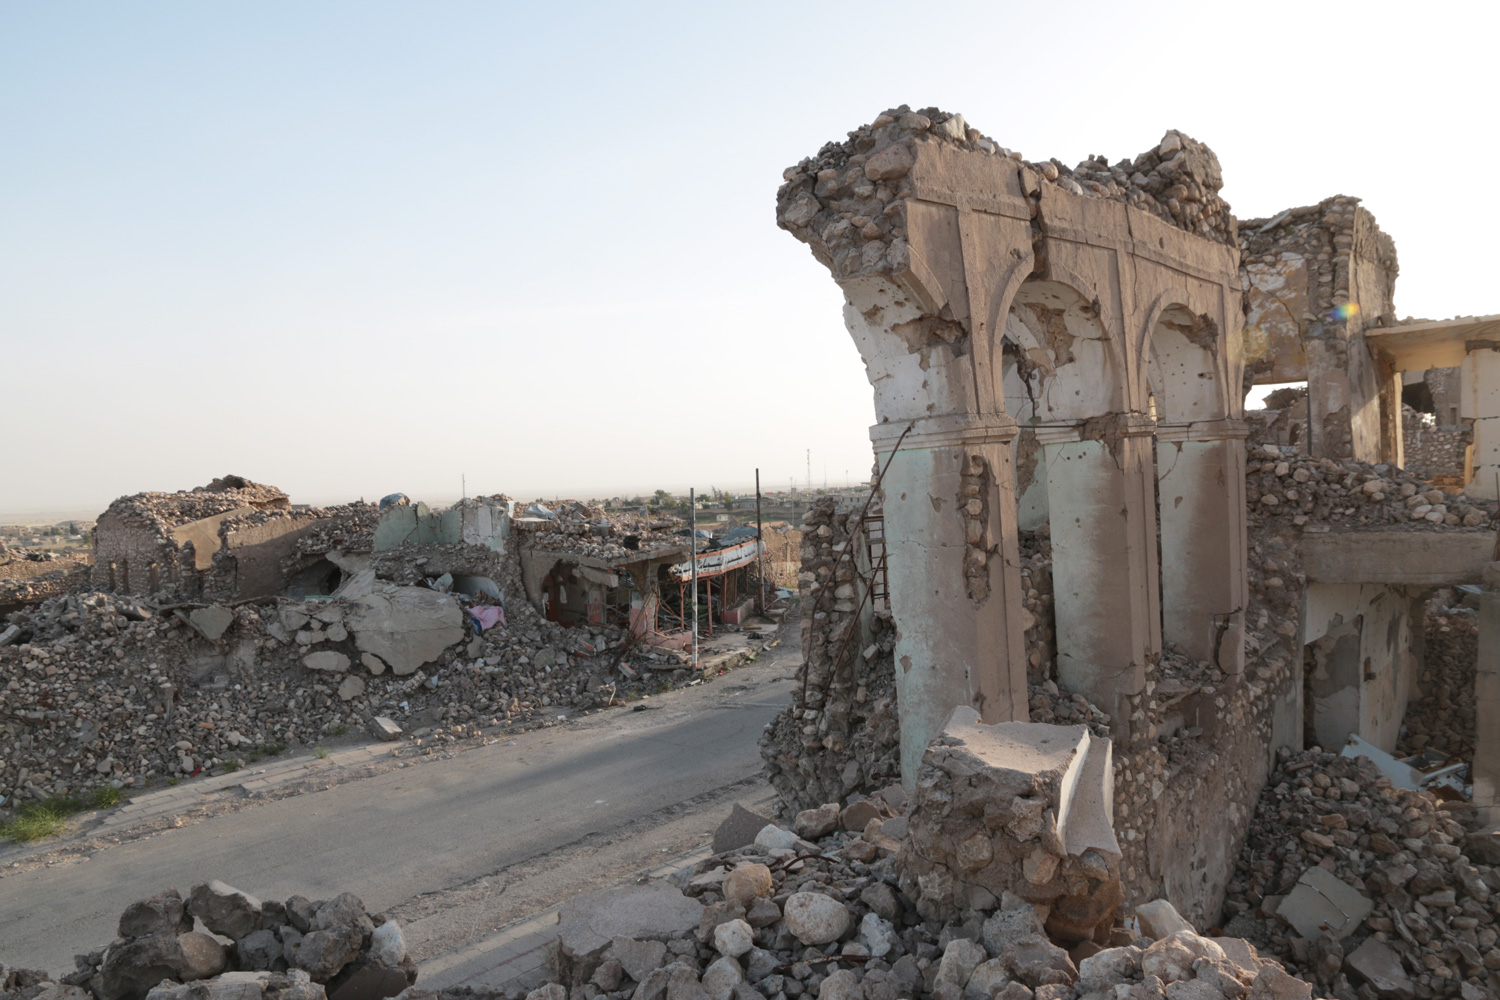 The town of Sinjar was heavily destroyed by coalition airstrikes before it was retaken from ISIS by Kurdish forces in November 2015.